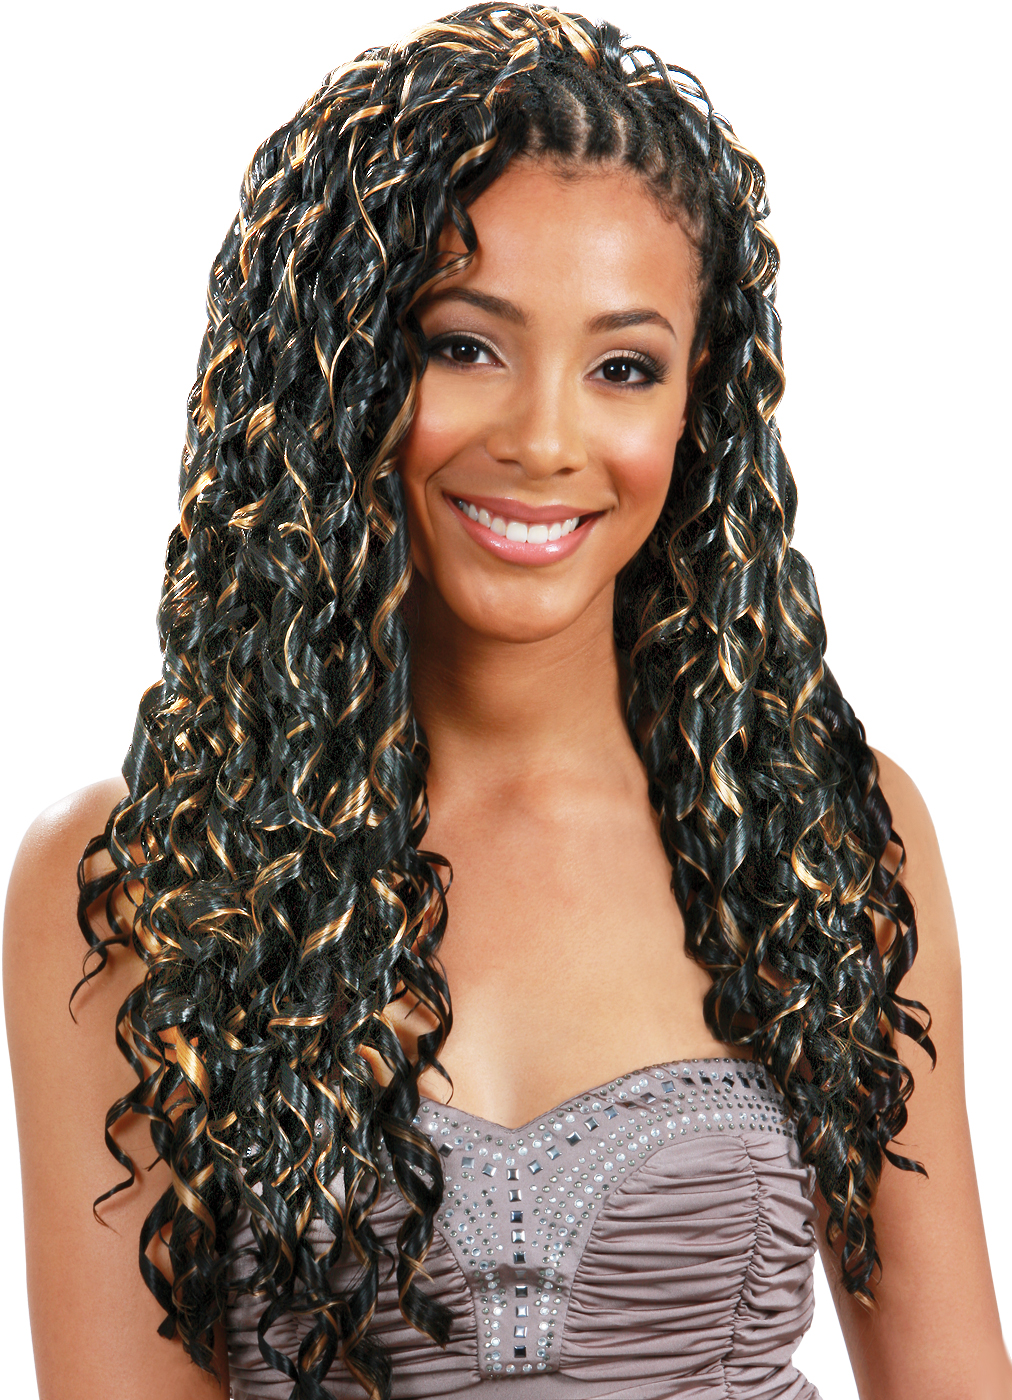 Crochet Box Braids Bobbi Boss : model dual braid tape curl class braid color shown length shown ...